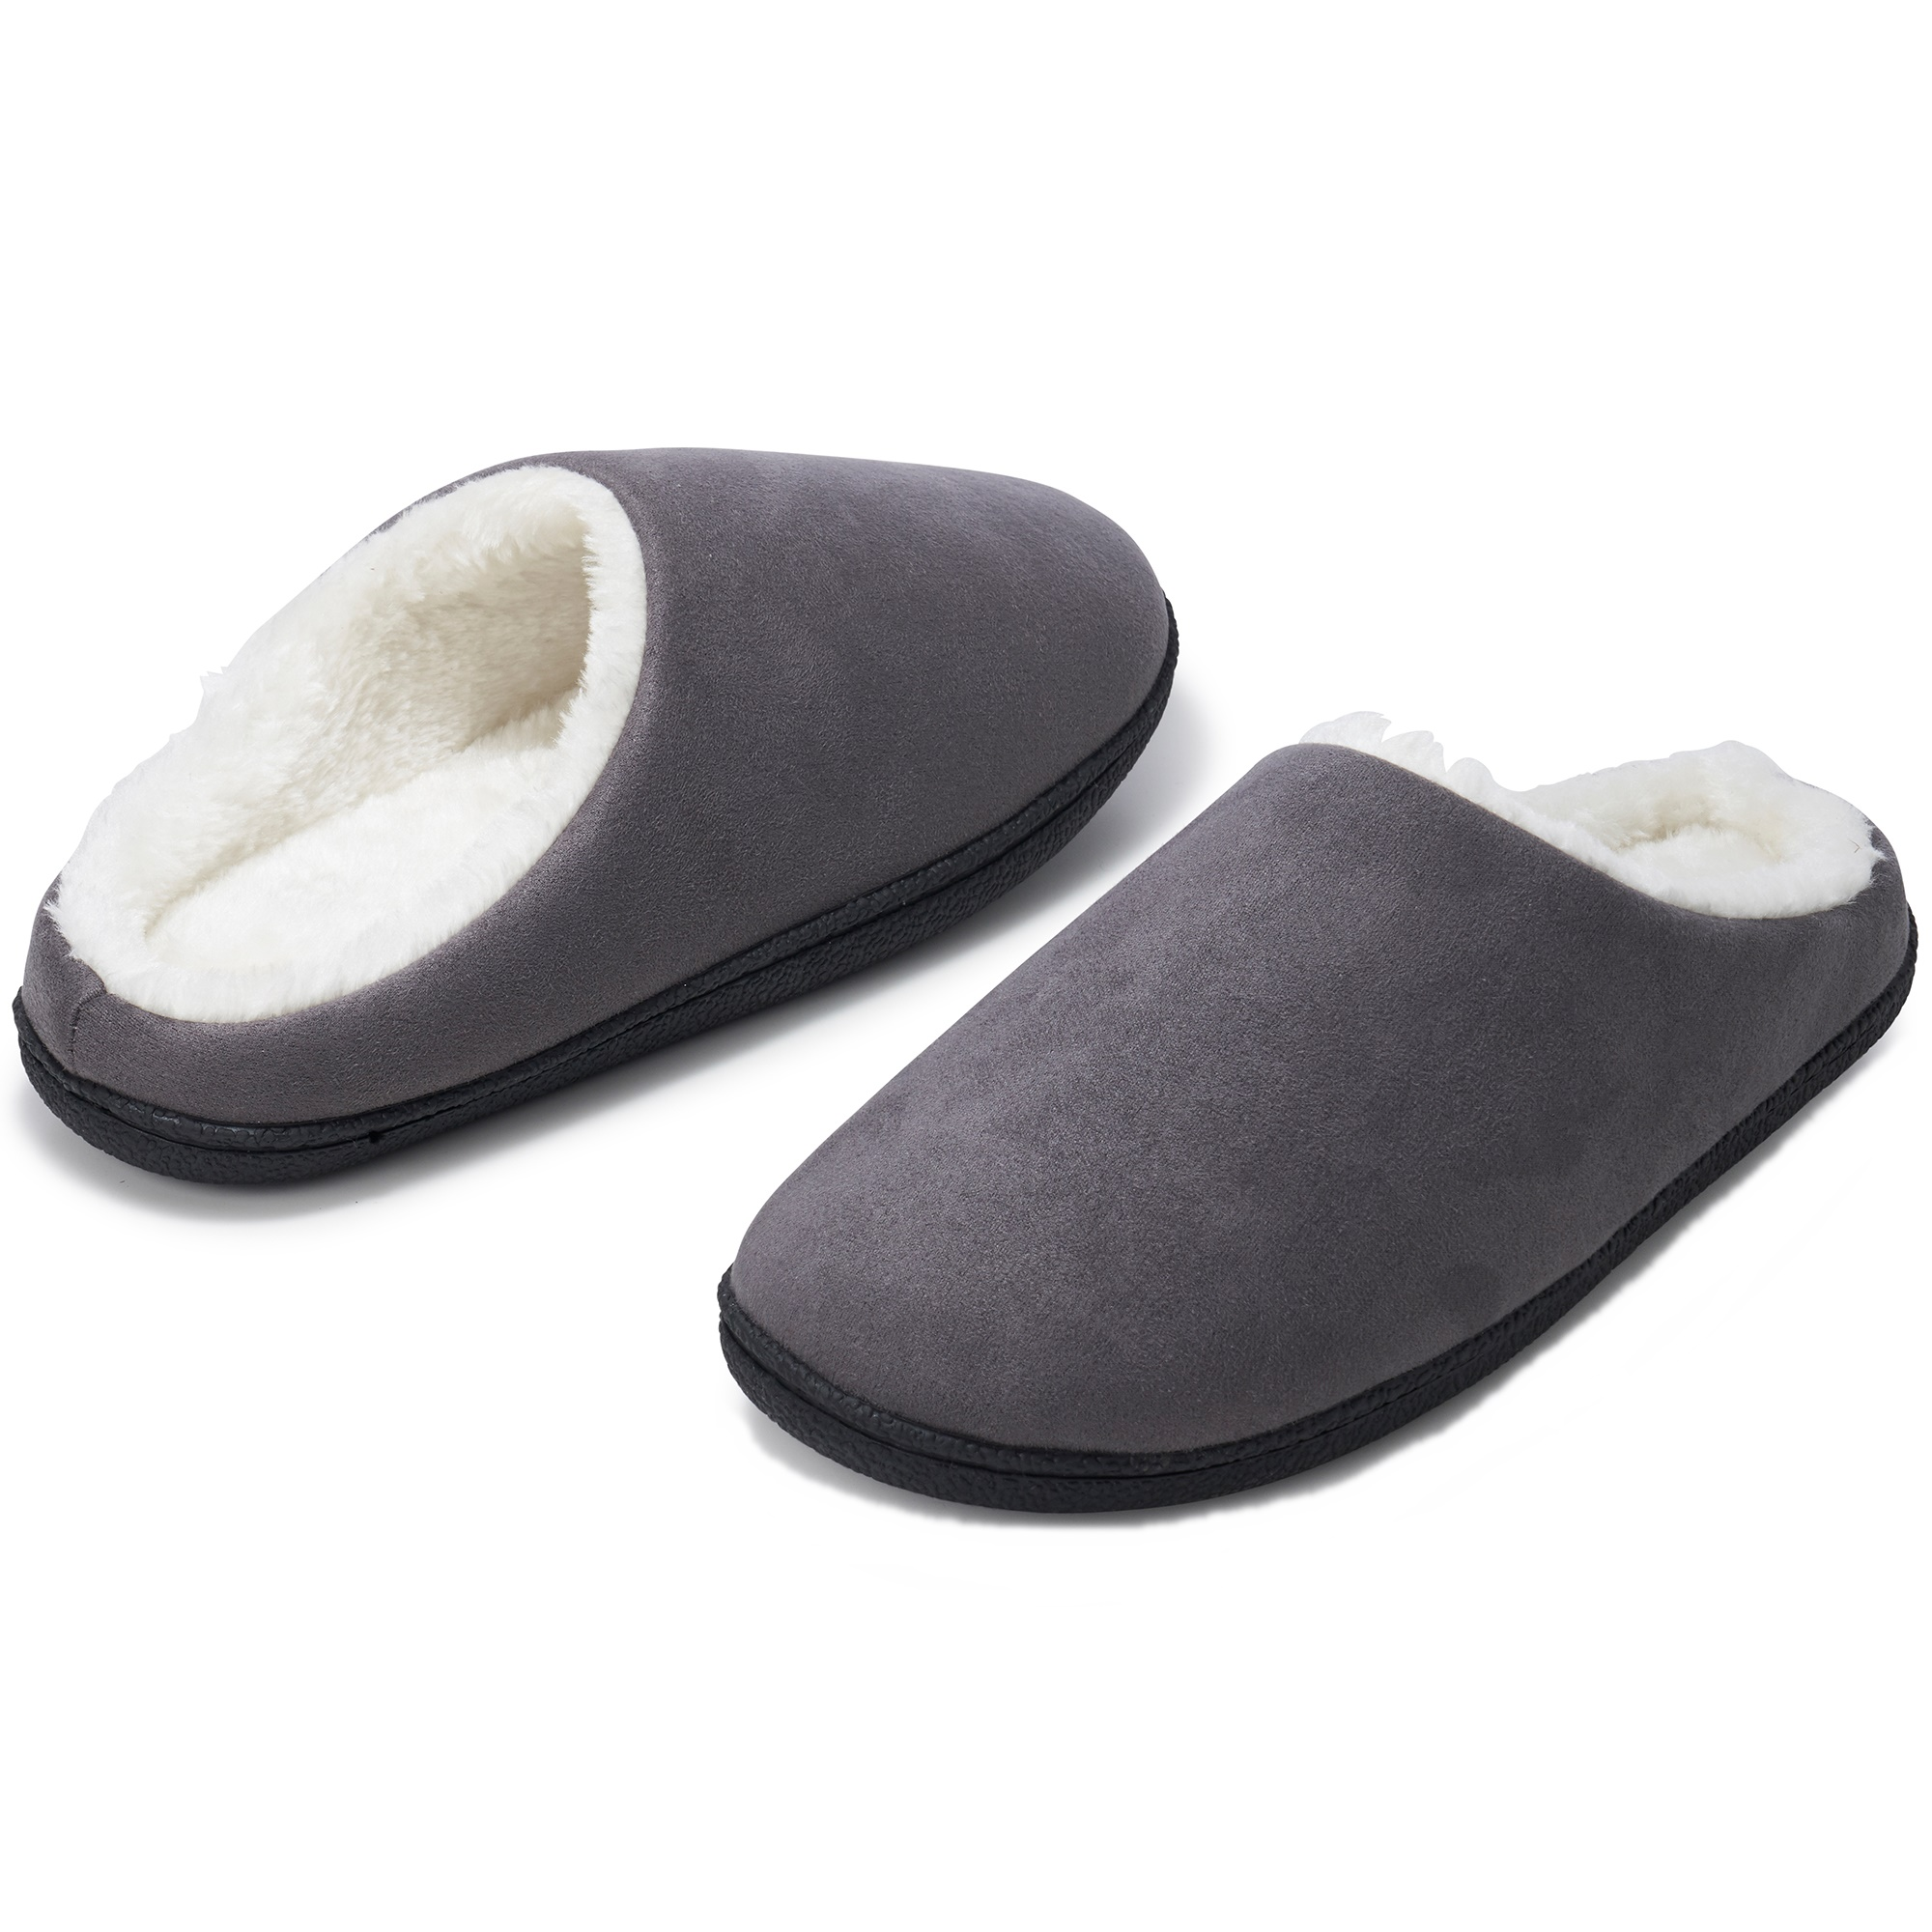 Alpine-Swiss-Mens-Memory-Foam-Clog-Slippers-Indoor-Comfort-Slip-On-House-Shoes thumbnail 26